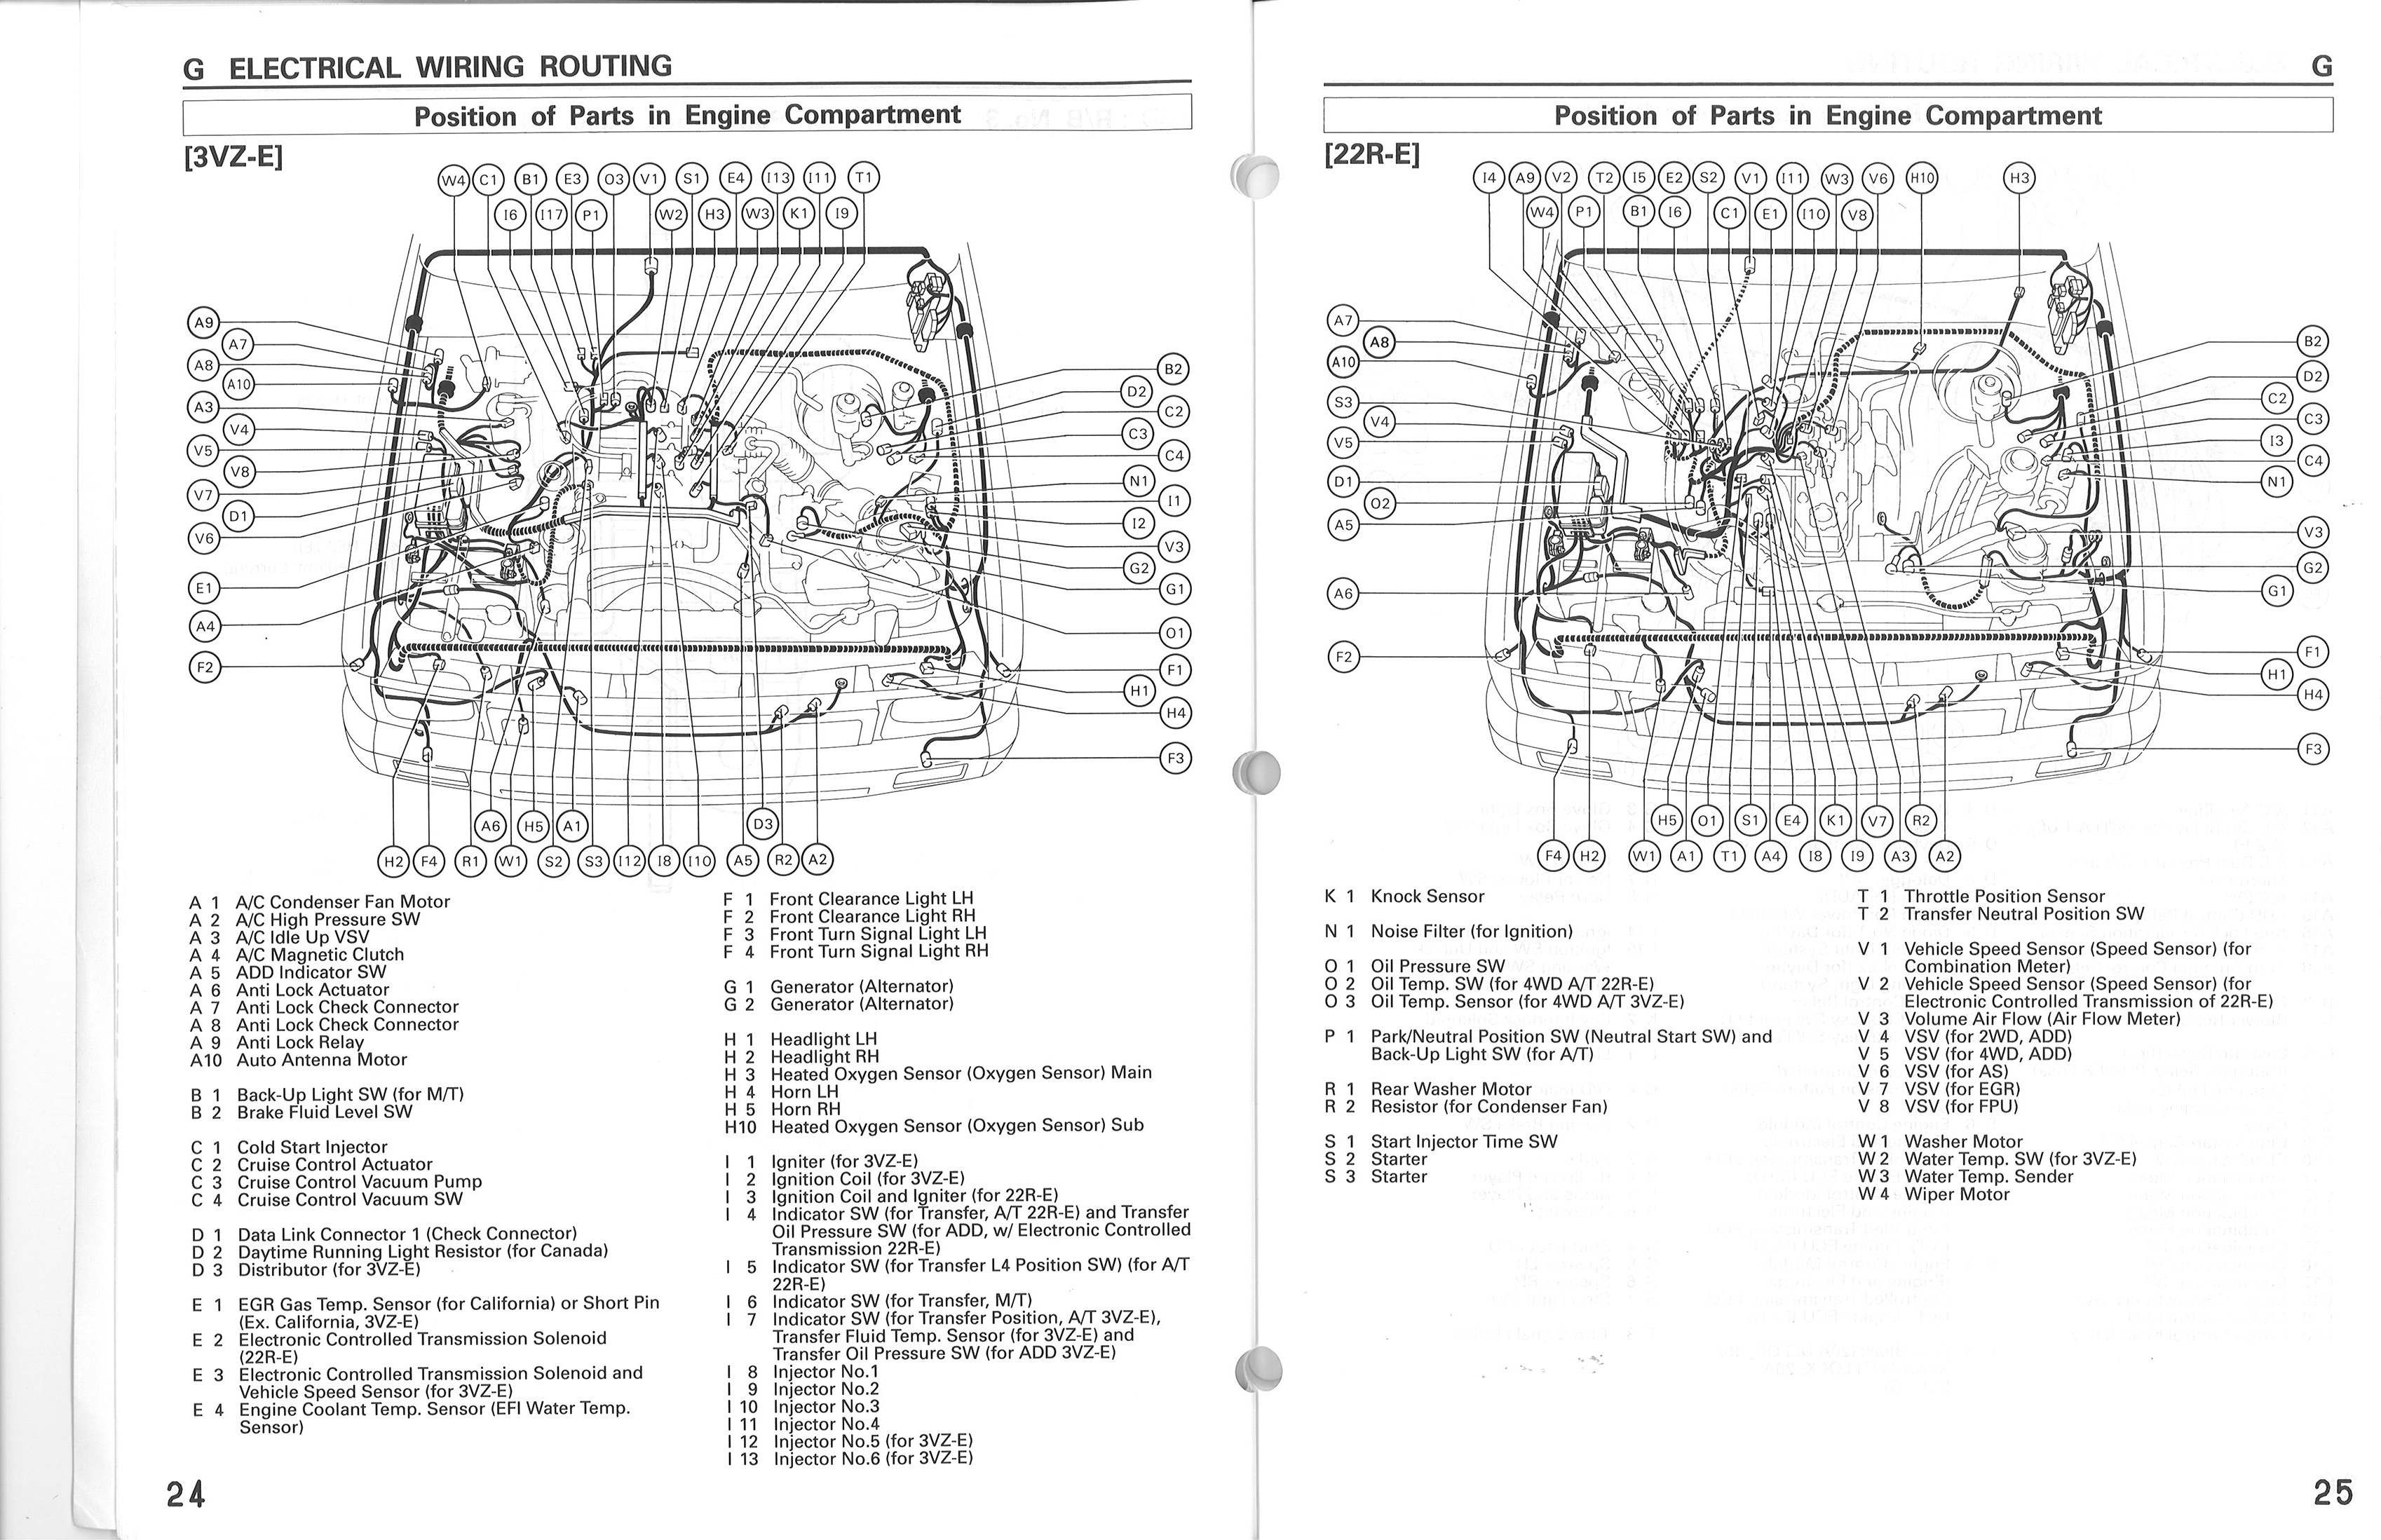 isuzu rodeo wiring diagram 13 pin caravan plug 1994 electrical imageresizertool com